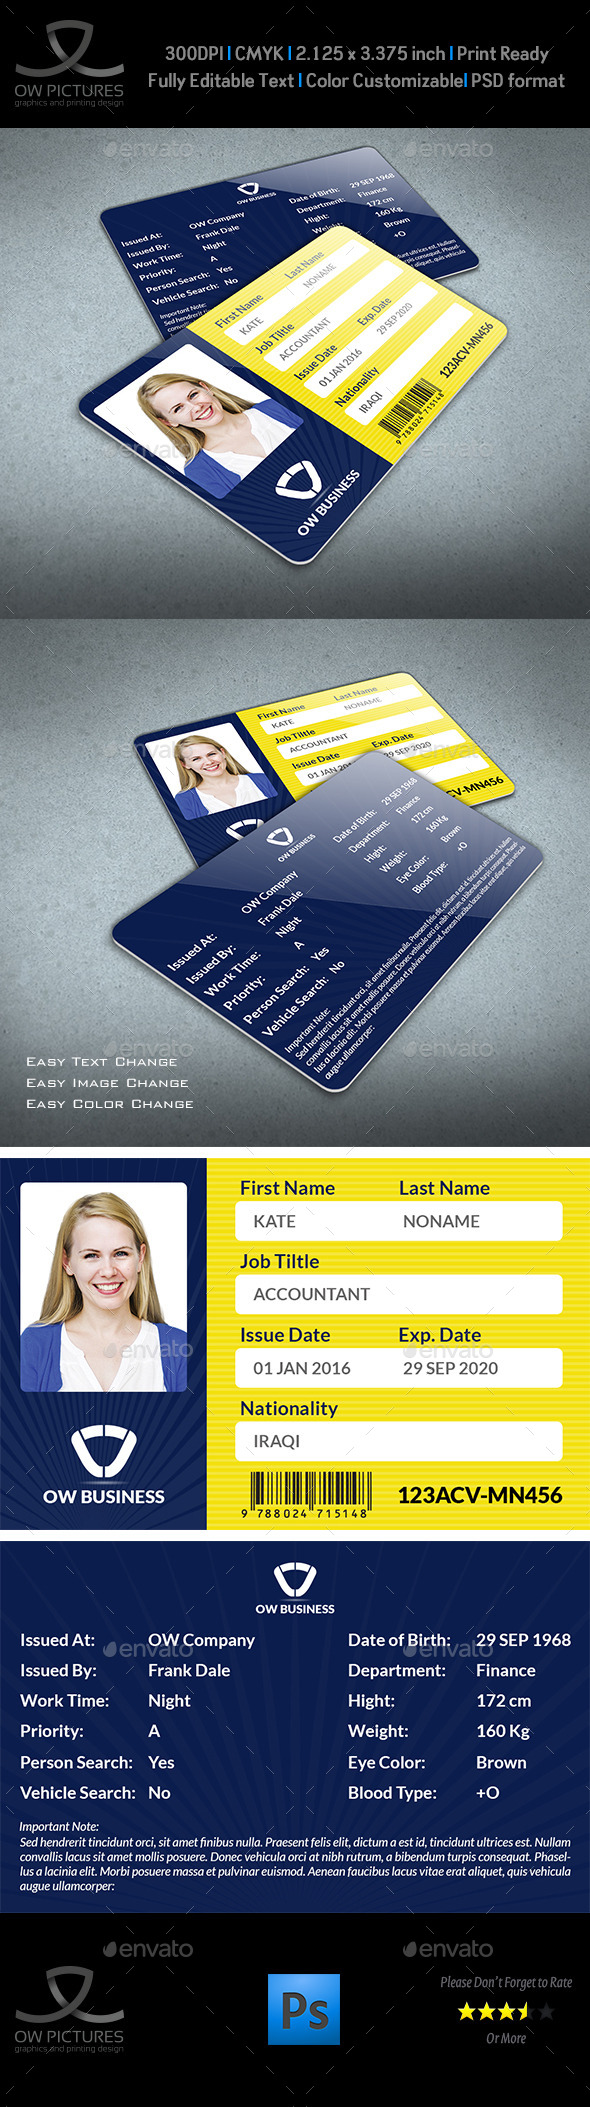 Graphics Designs Card amp; Id From Templates Template Graphicriver